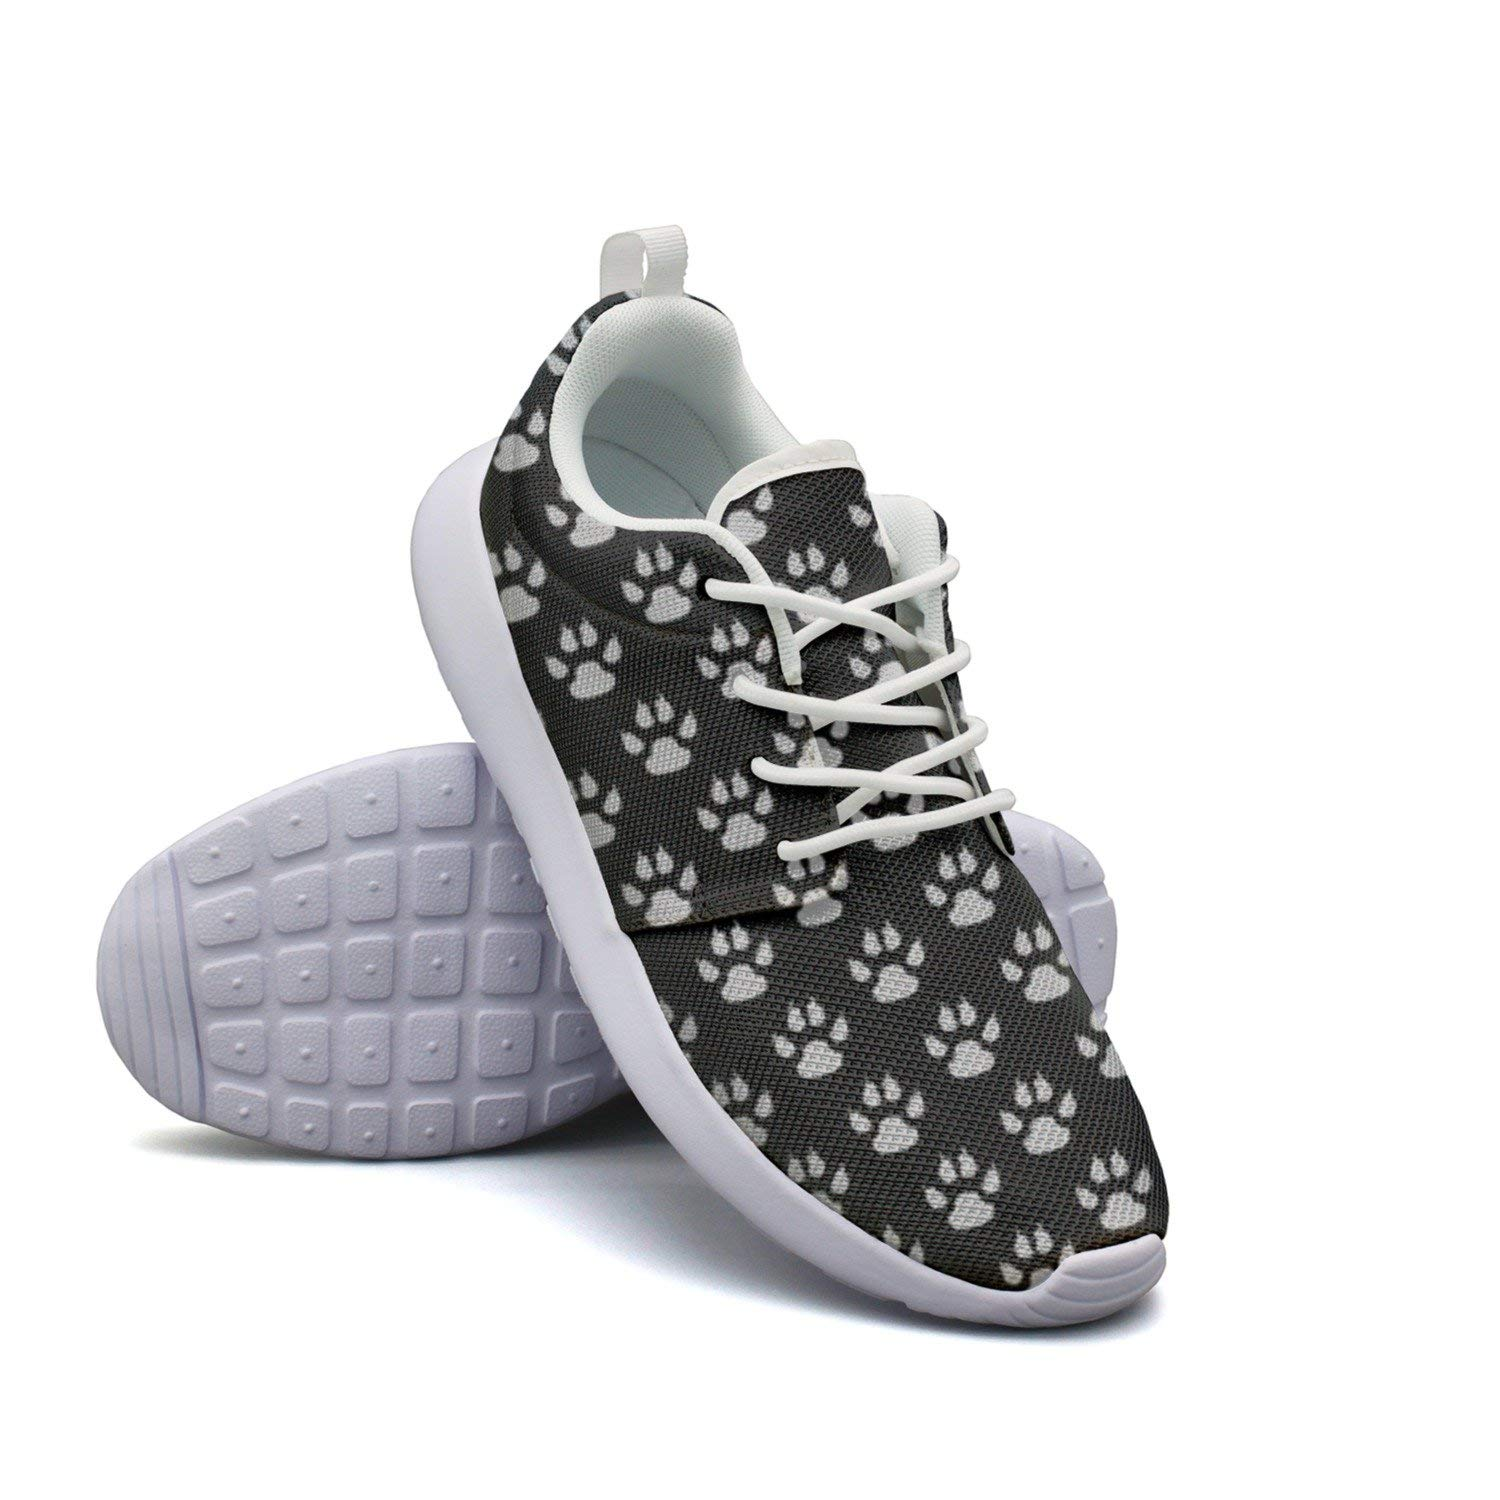 Black And Gray Animal Paw Prints Pattern Wallpaper Women's Camping Running Shoes Hunting Cute